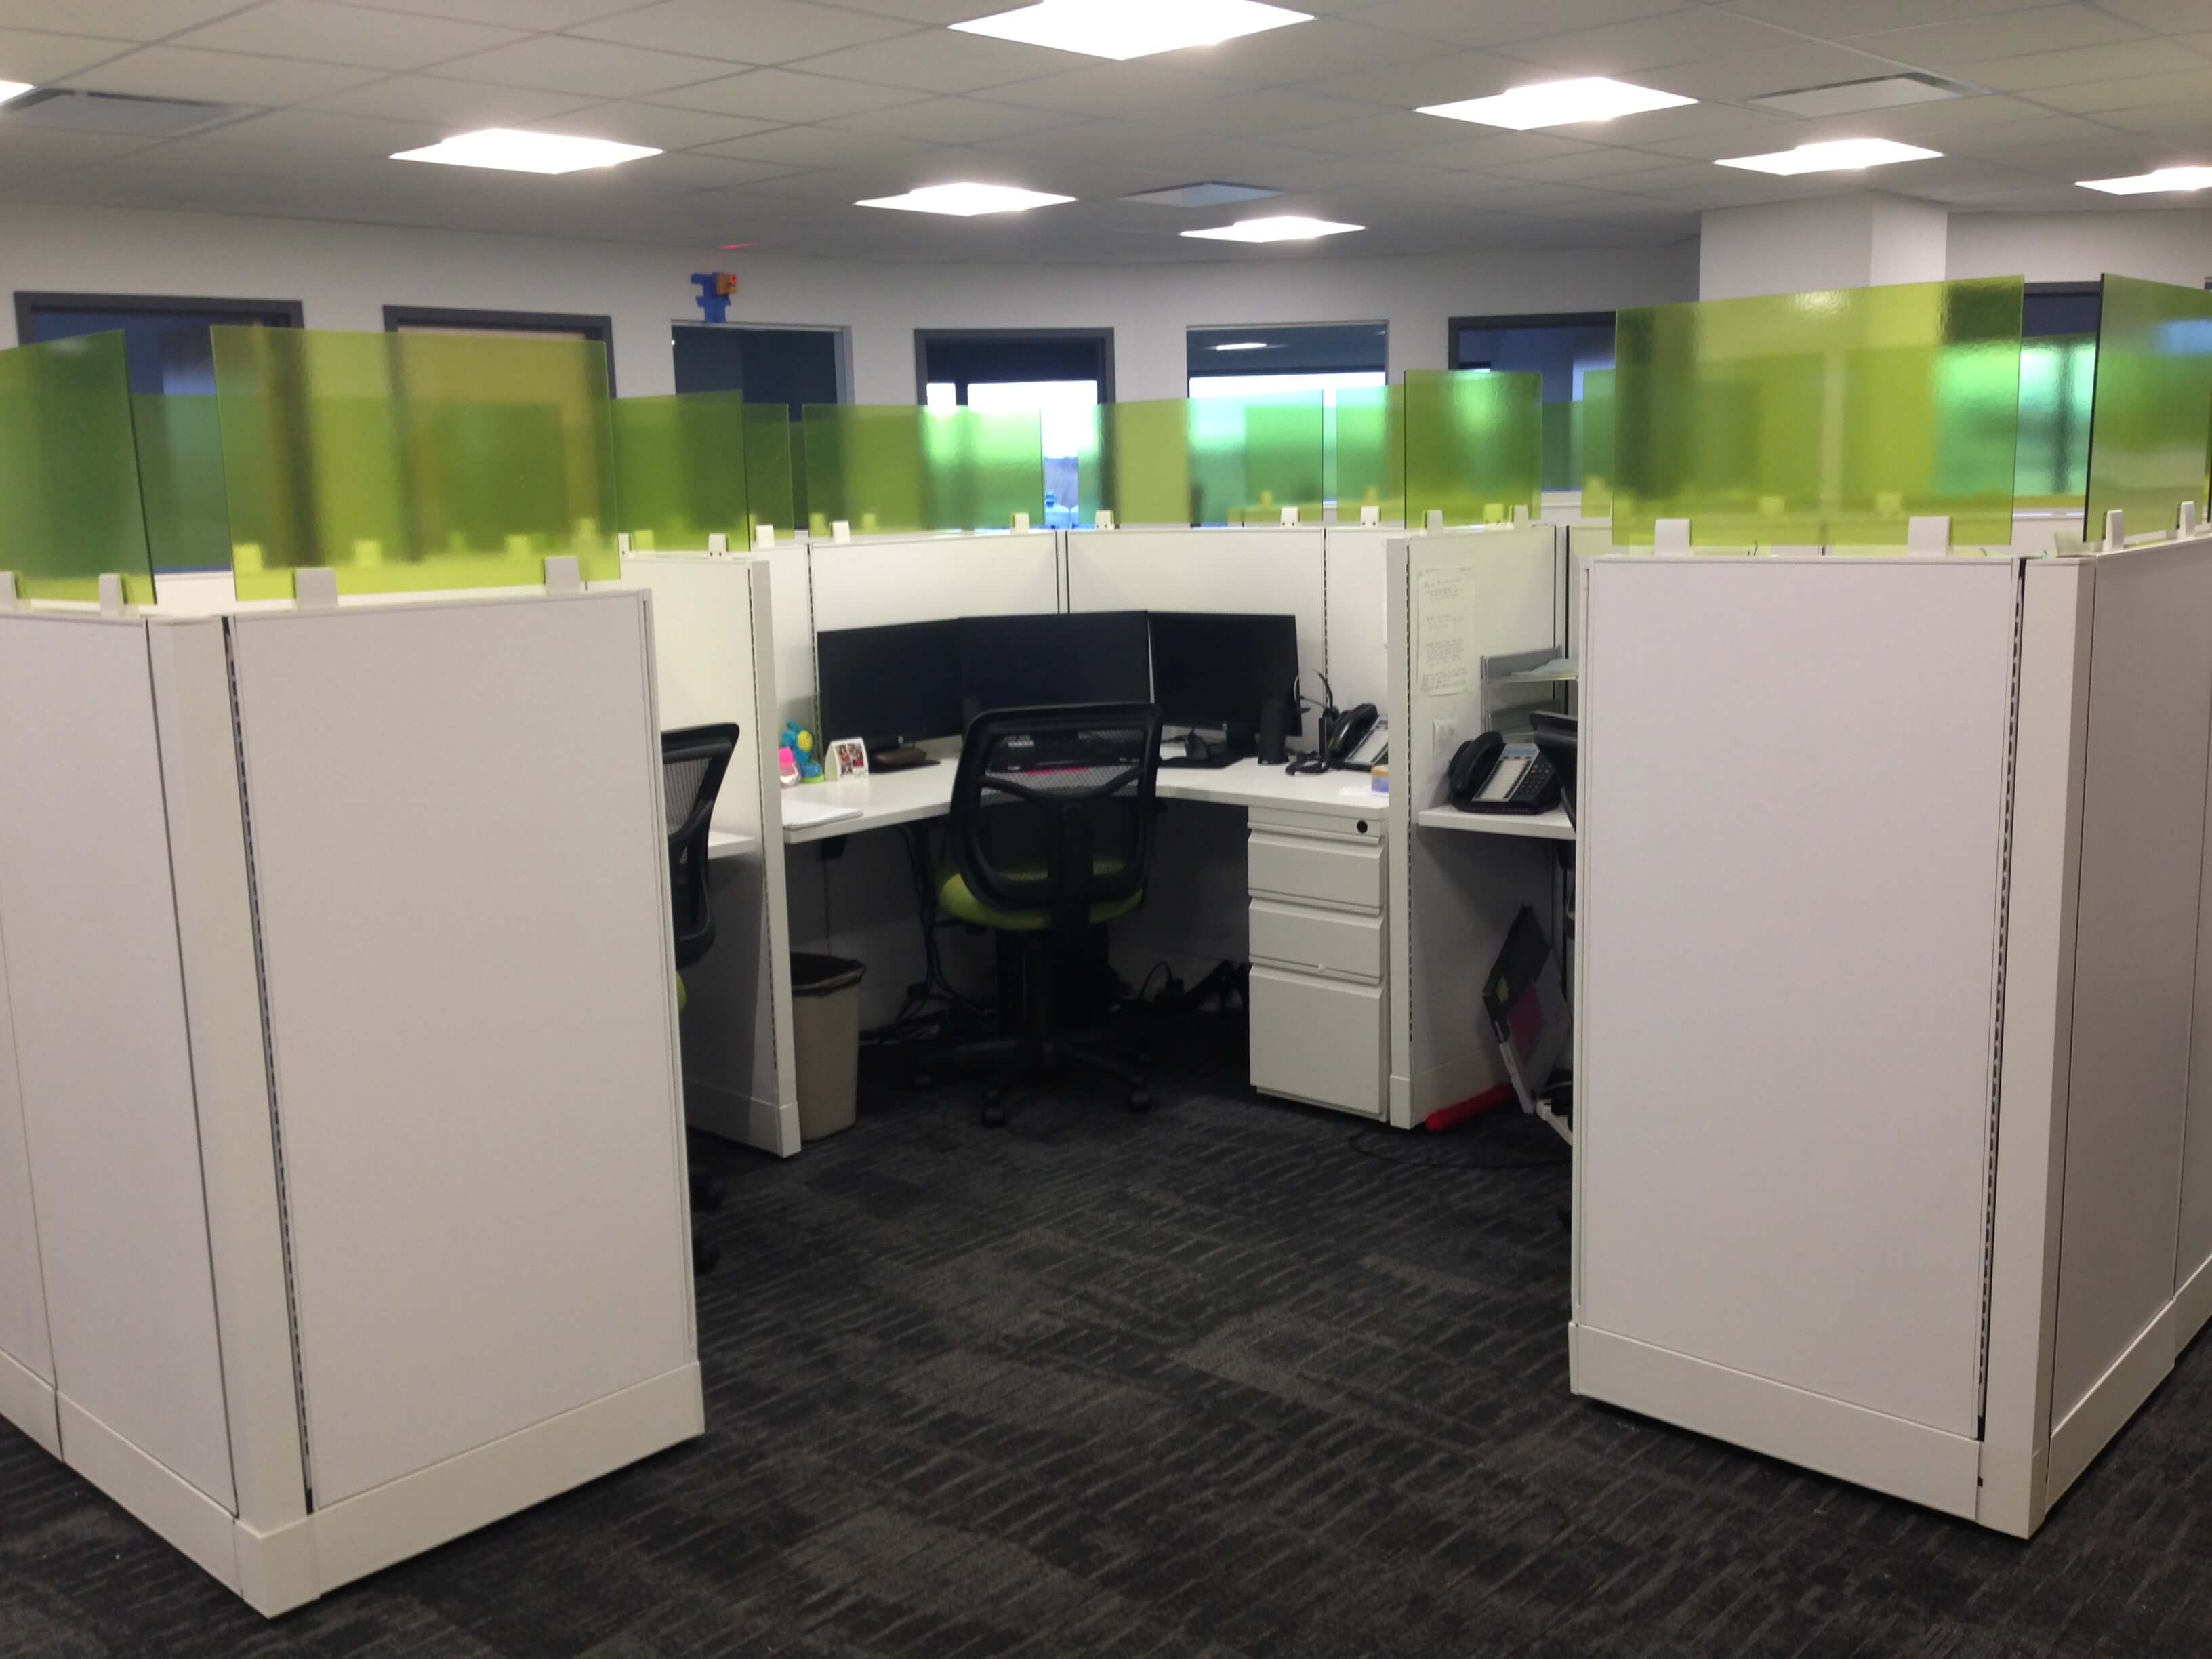 Used Cubicles by cubicles.com